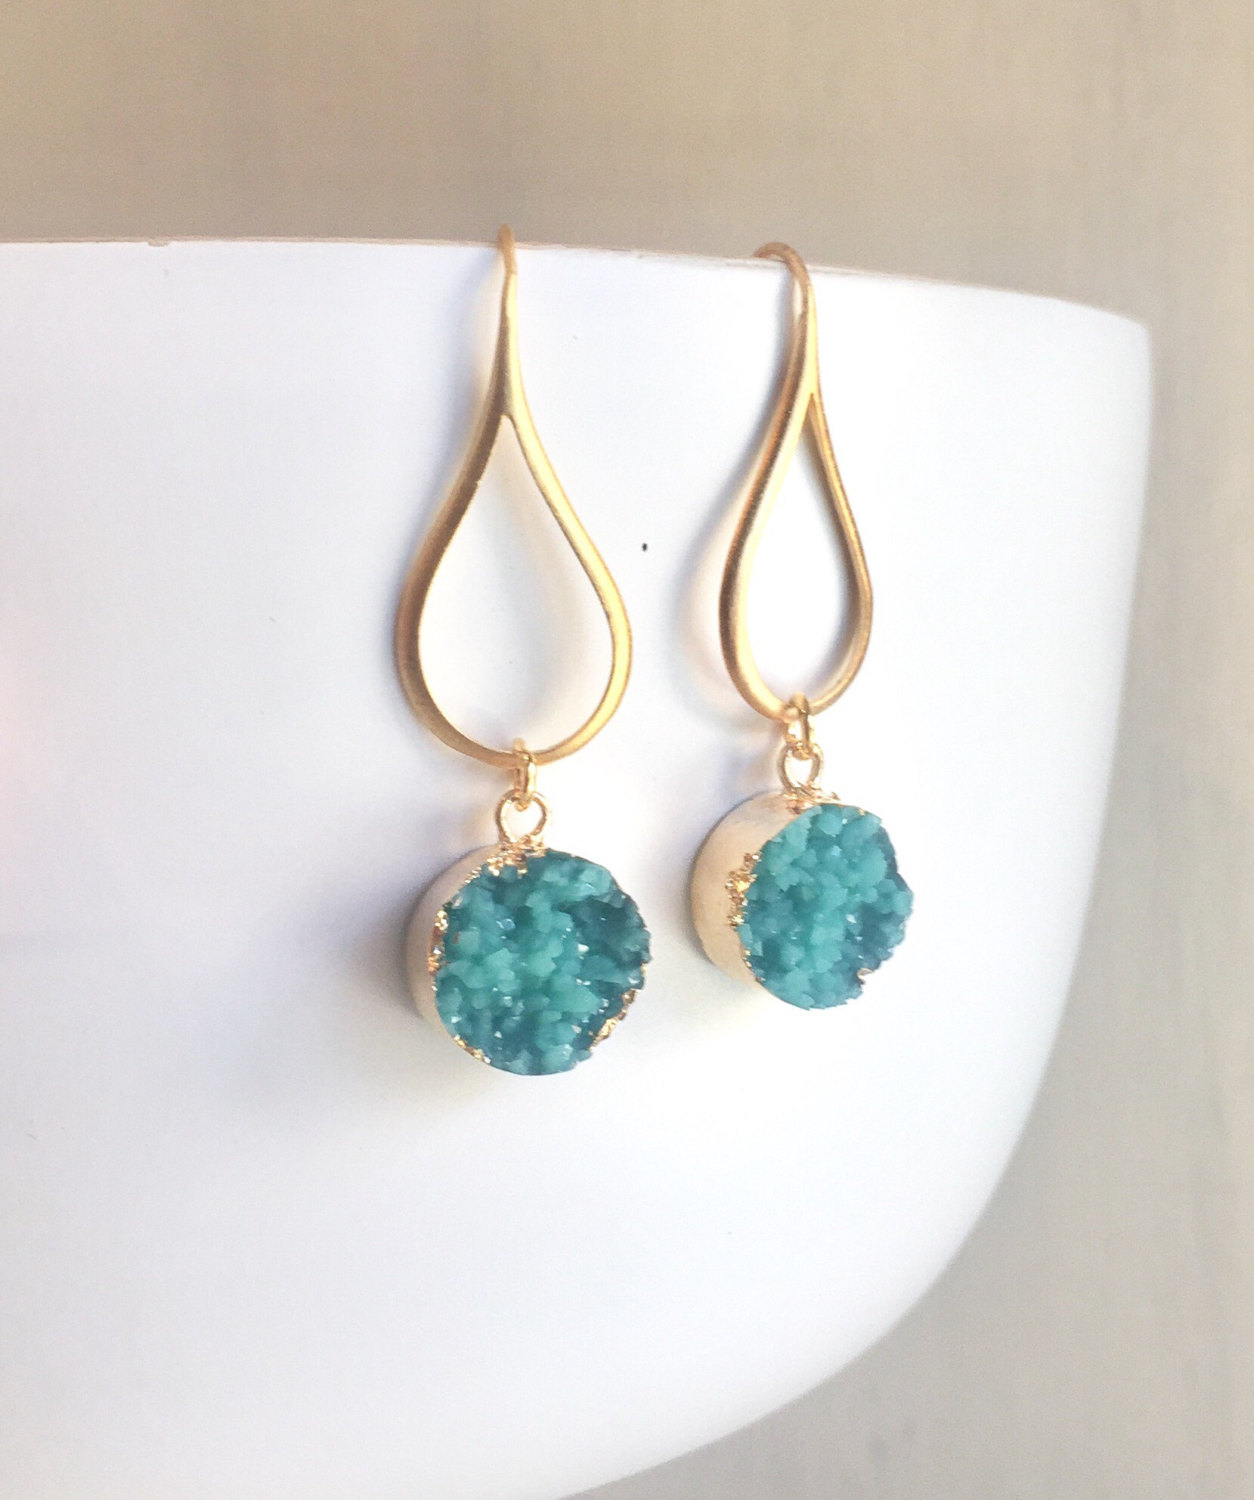 druzy necklace by Rustic Gem Jewelry | via Druzy Earrings Giveaway https://emmalinebride.com/2017-giveaway/druzy-earrings-giveaway/